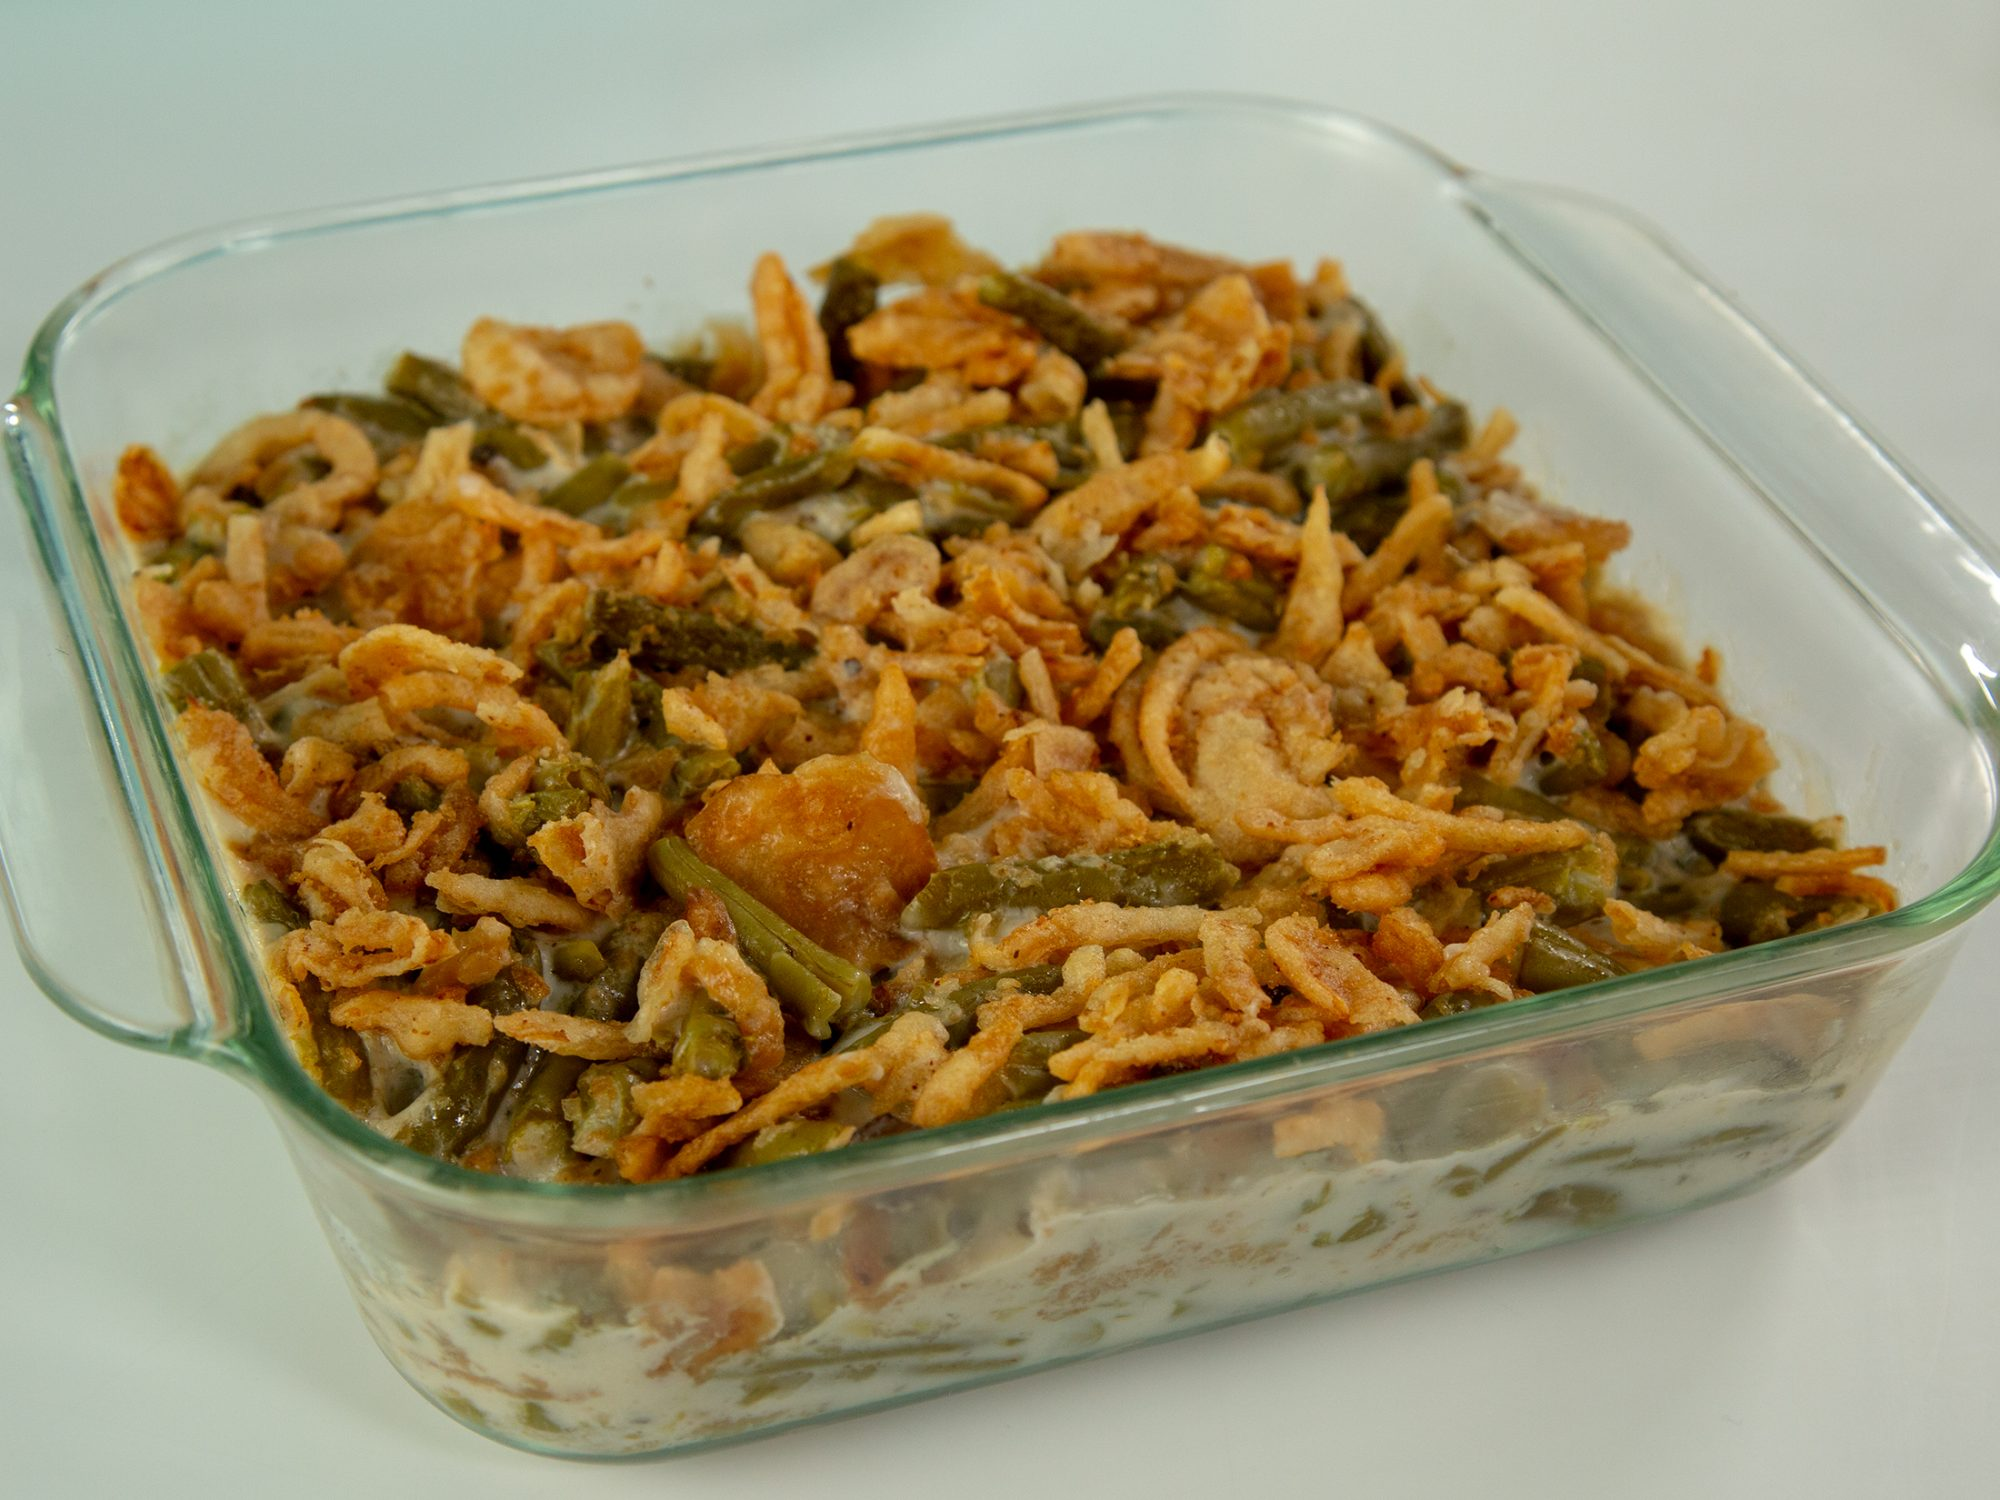 Microwave Green Bean Casserole image